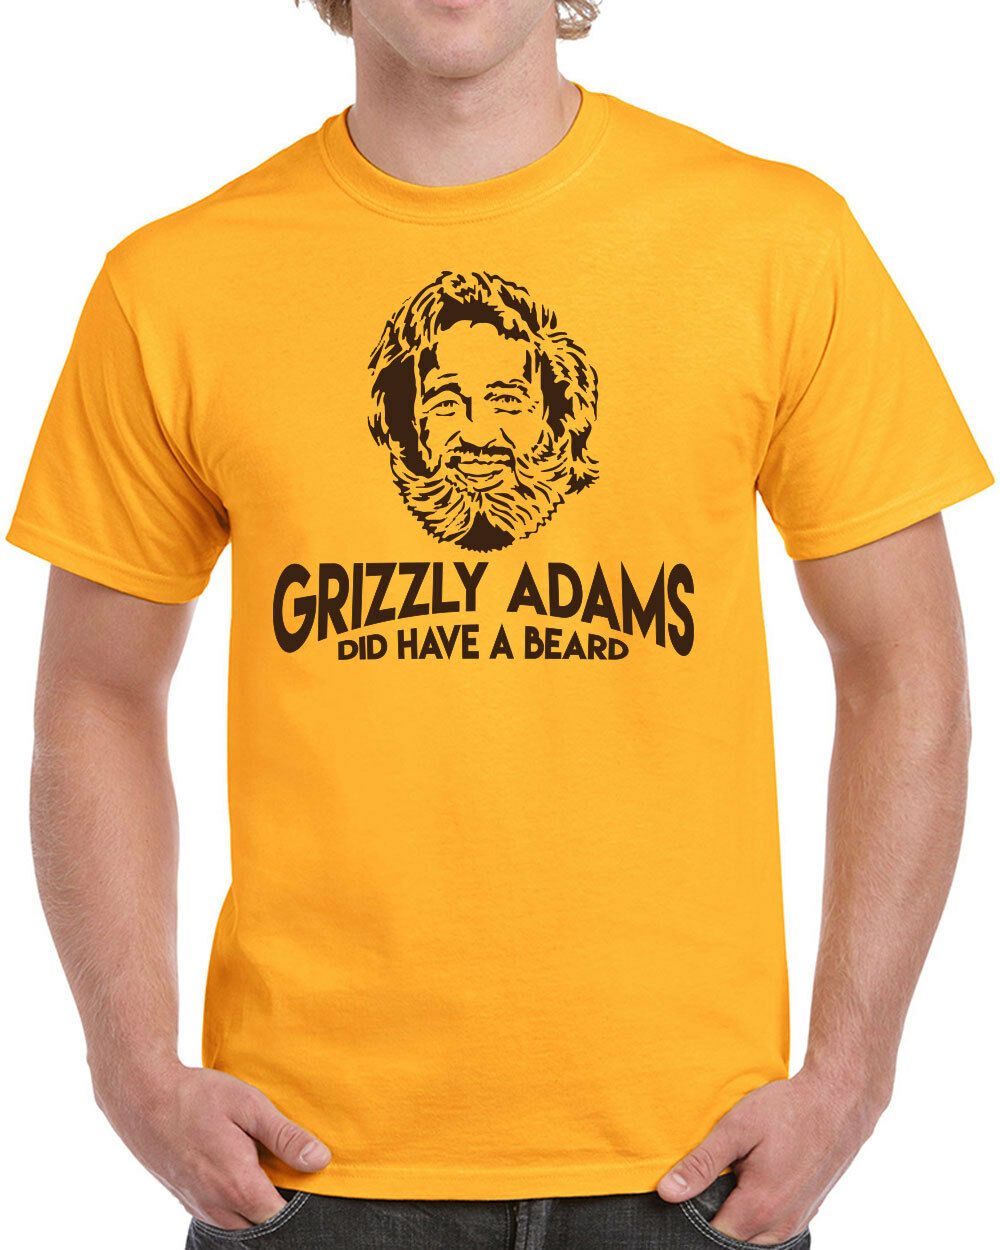 Grizzly Adams Did Have A Beard : grizzly, adams, beard, Grizzly, Adams, Beard, T-shirt, Funny, Sandler, Movie, Quote